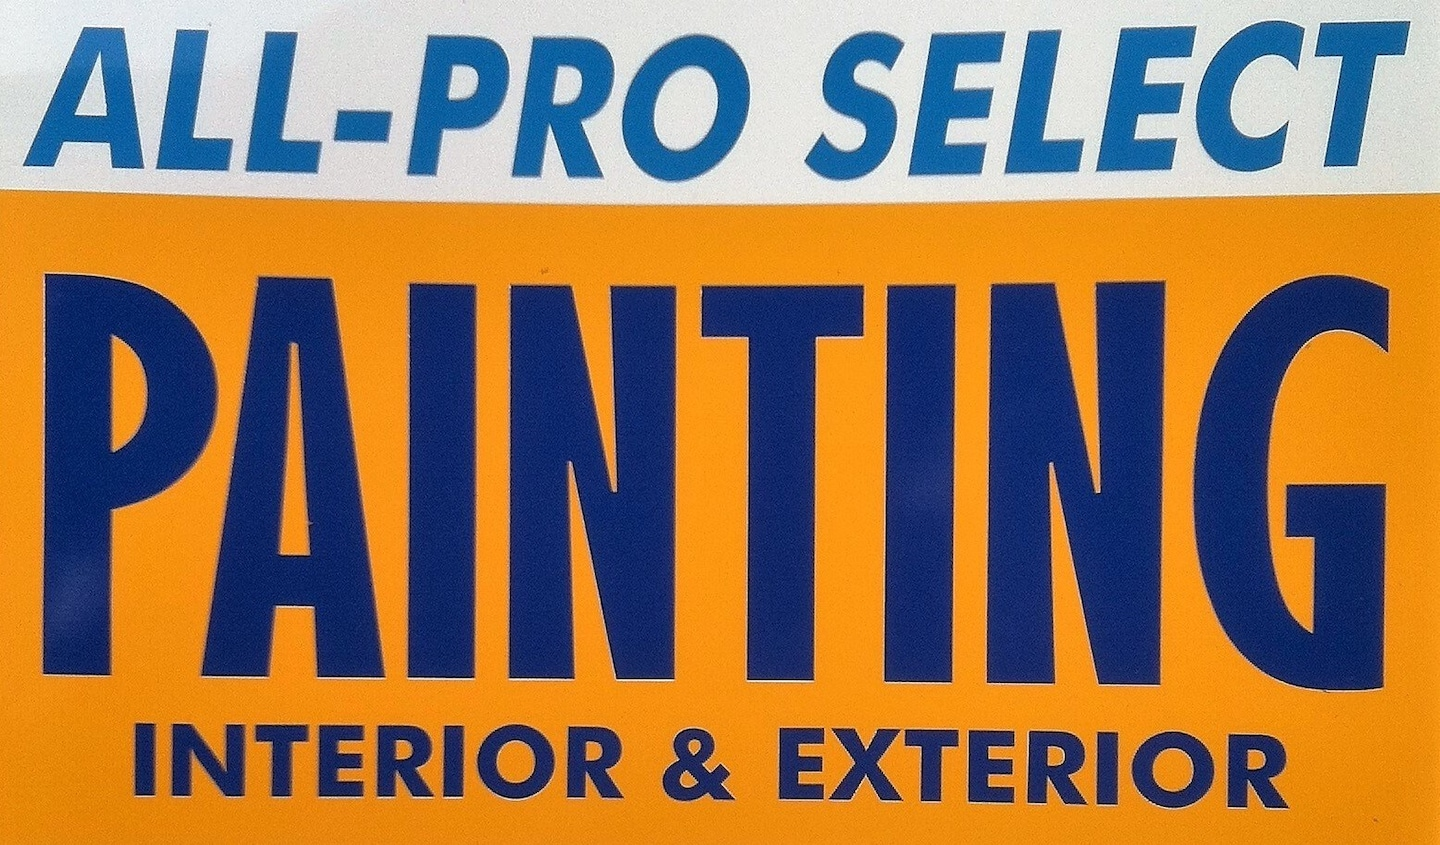 All Pro Select Painting LLC